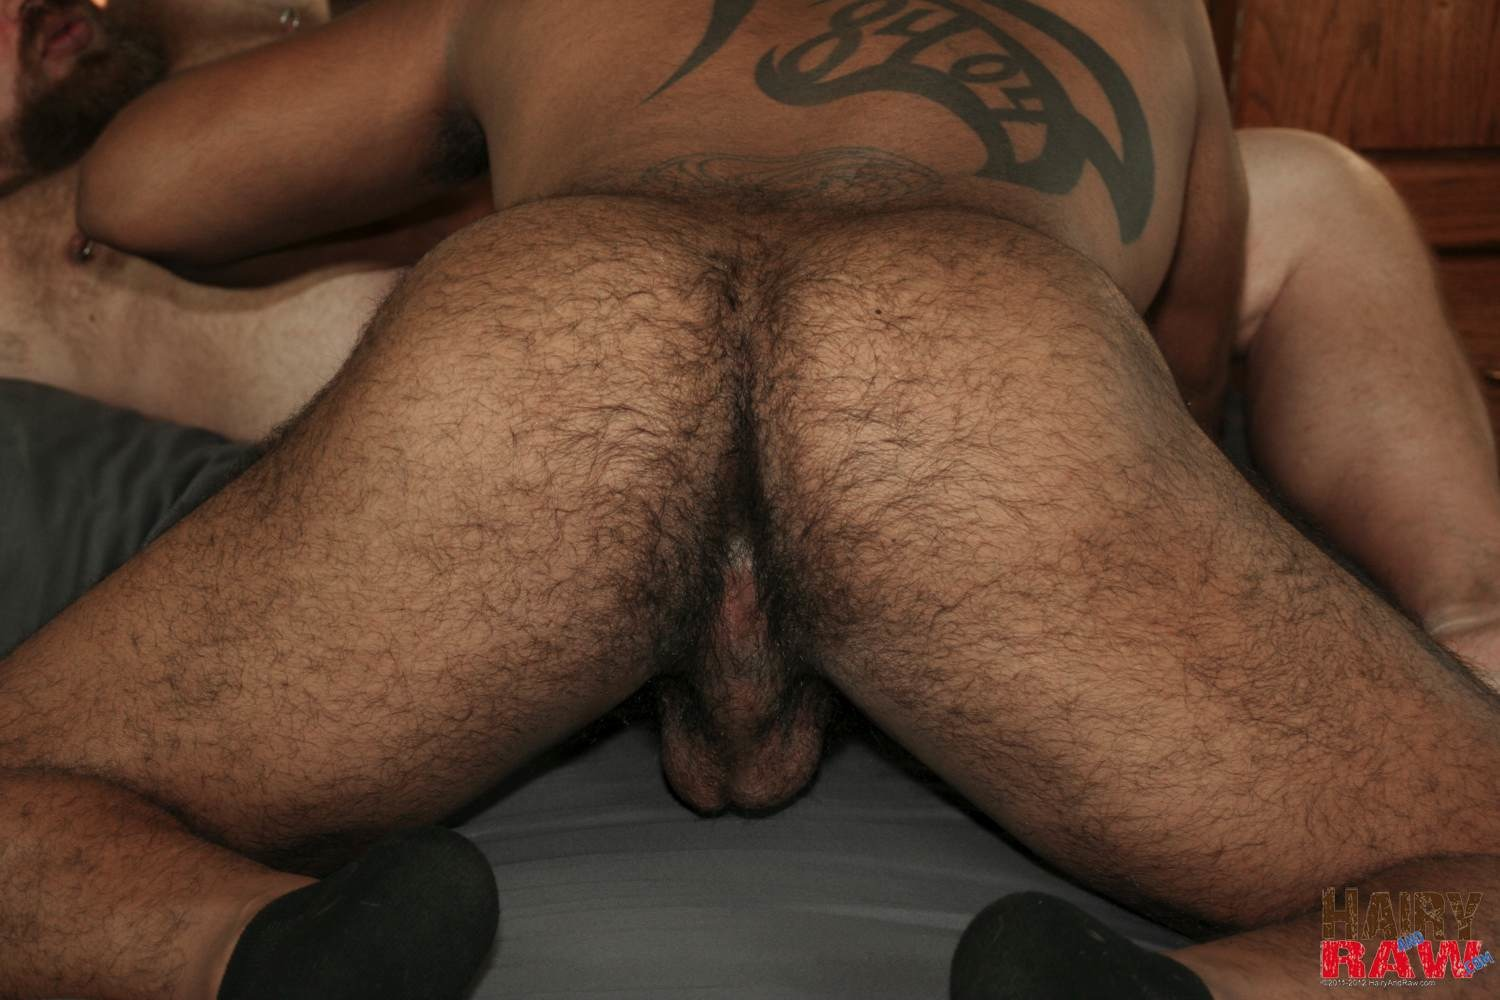 Interracial Bareback Porn Gay Videos Gay porn videos